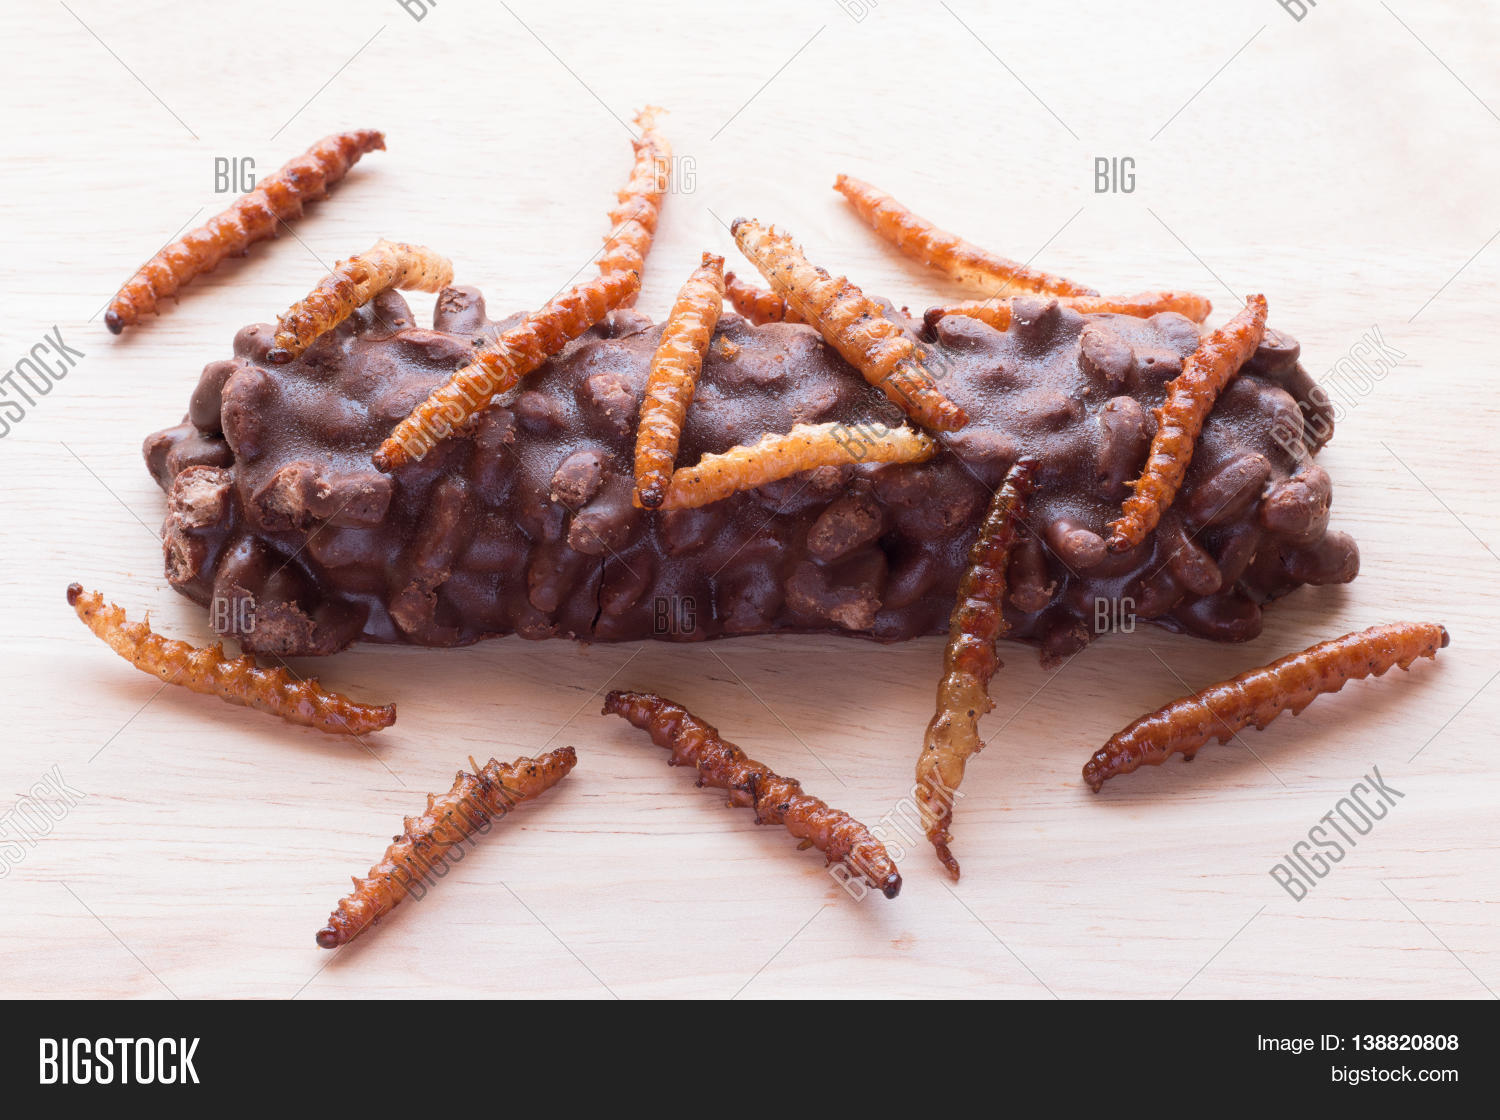 fried,insect,market,food,edible,system,crisis,bamboo,worm,wood,thailand,asian,cuisine,roasted,meal,eat,crispy,snack,spiders,bugs,sale,water,grasshoppers,Vitamin,A,C,B2,Magnesium,Iron,Calcium,Phosphorus,healthy,equipment,organic,energy,cricket,backgrounds,speed,breakfast,cook,bowl,deep,beetle,body,cambodia,cockroach,creature,candy,coated,chocolate,wafer,bars